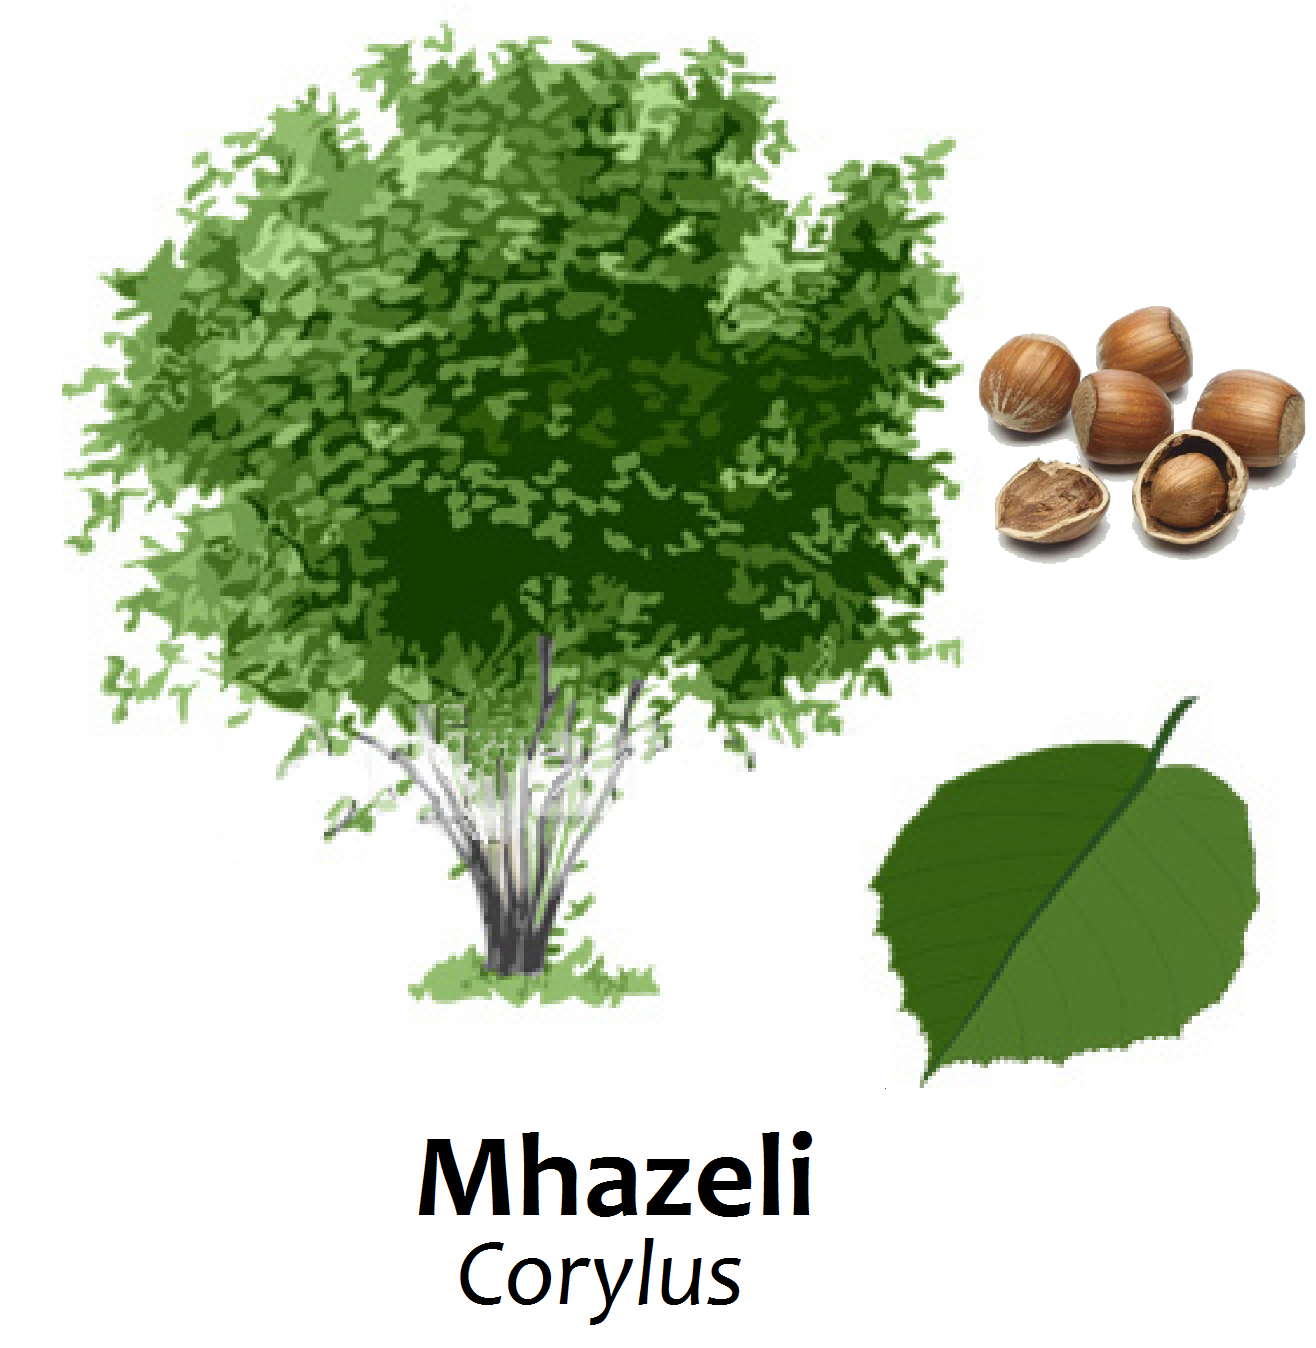 Translations Into Italian: Swahili Land: Mhazeli (Hazelnut Tree